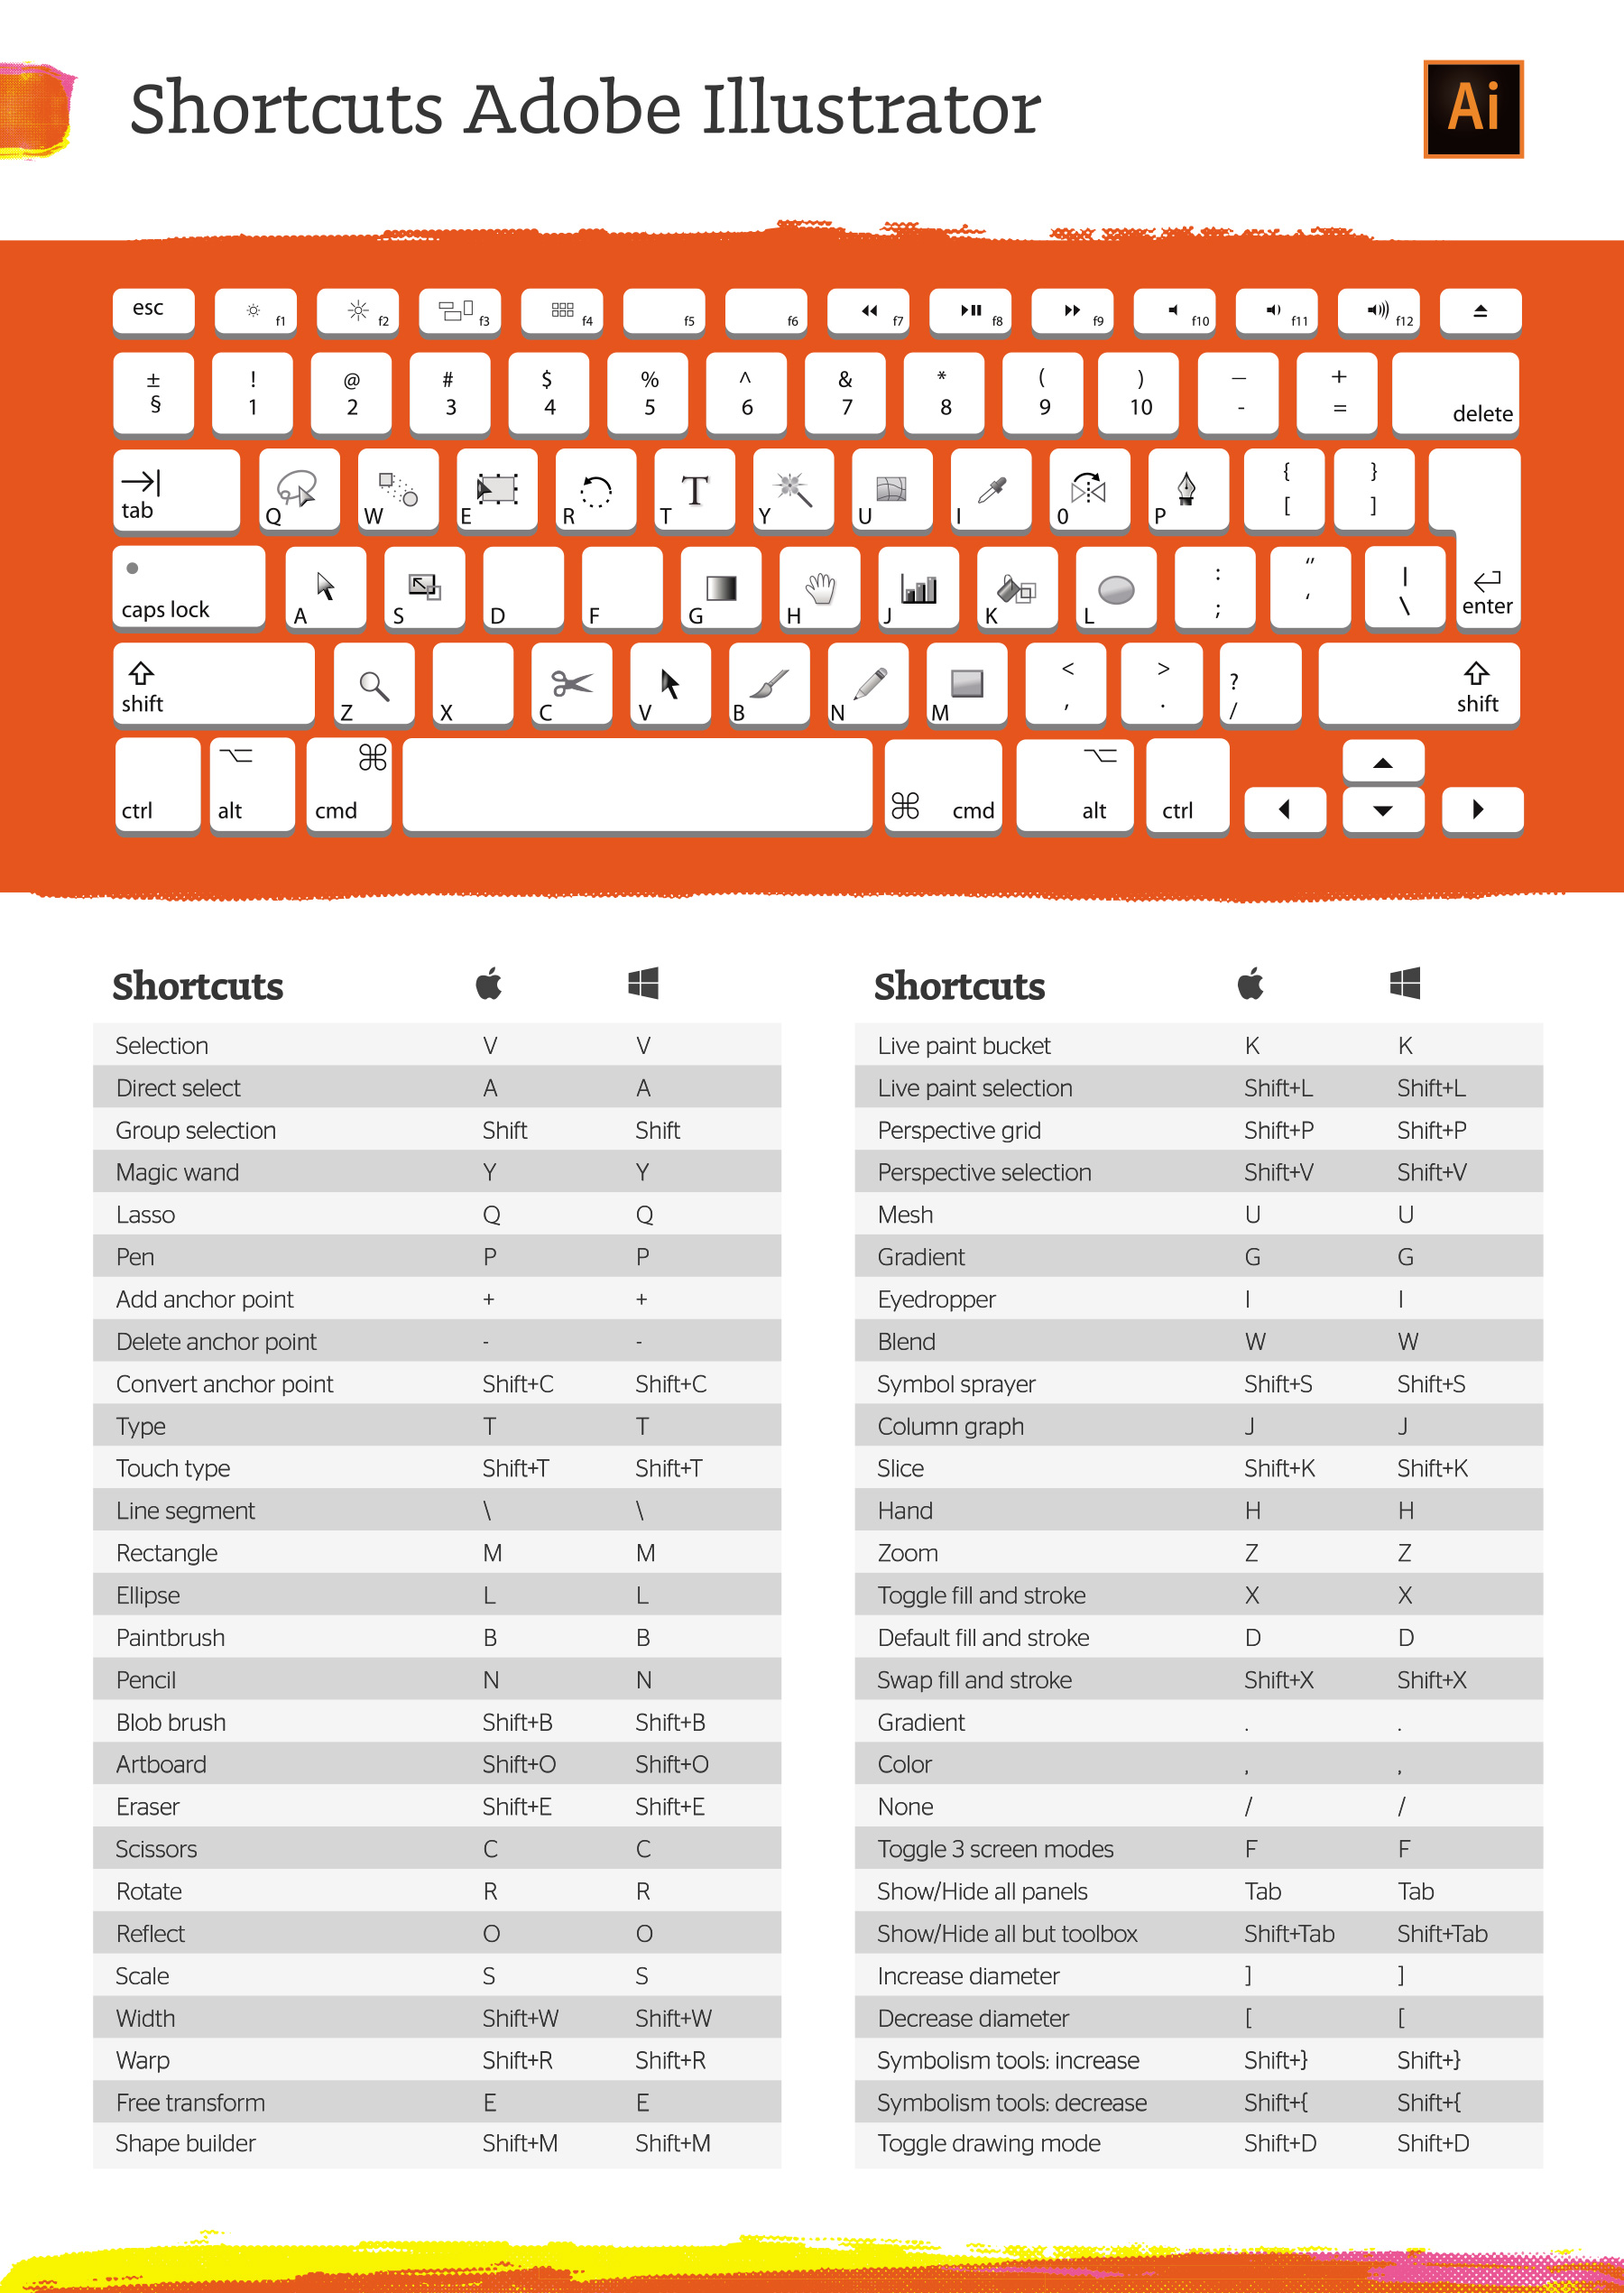 Shortcuts Adobe Illustrator